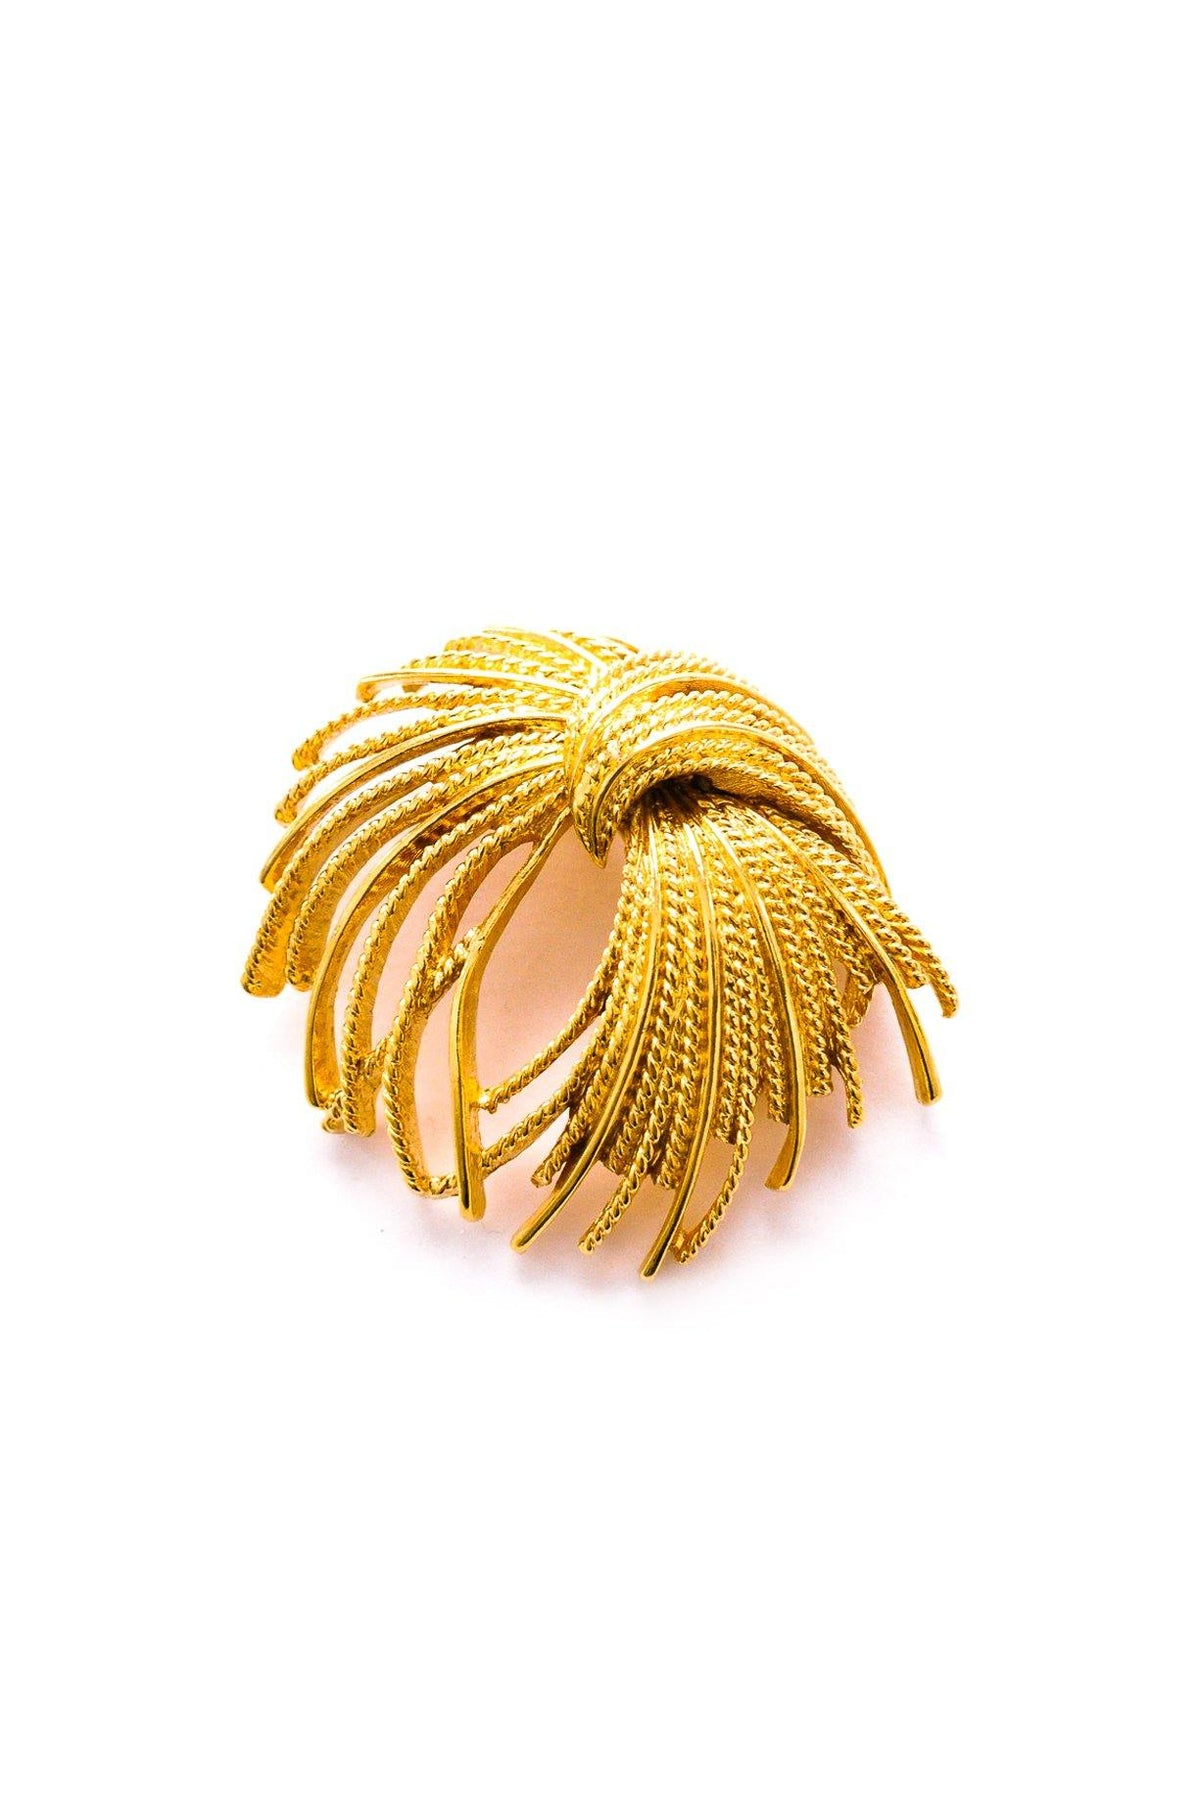 Vintage Monet Gold Spray Brooch from Sweet & Spark